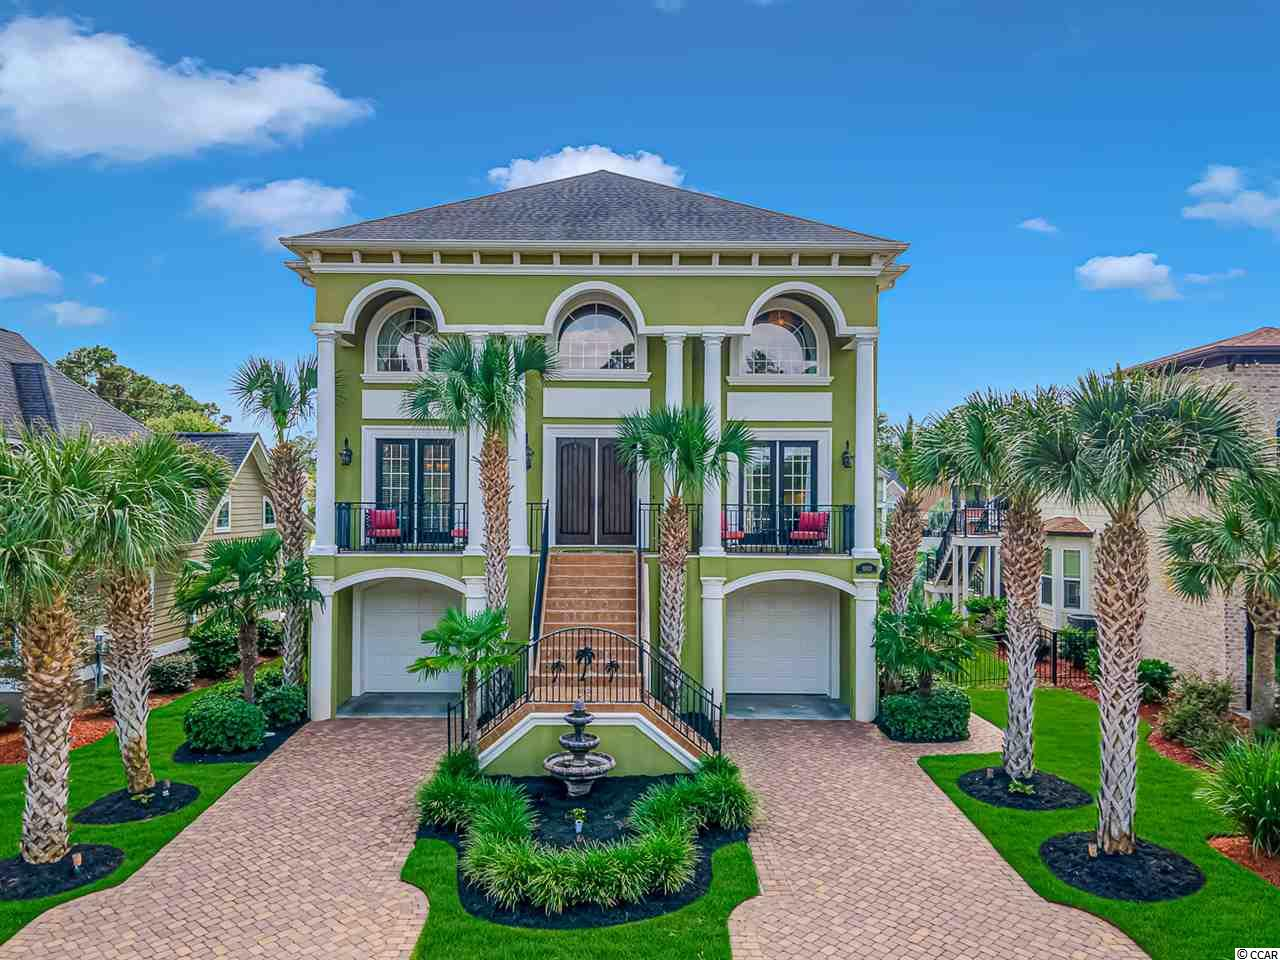 "Located within the ICW community of Sunset Harbour, this majestic custom built home is ready for new owners.  The detail, custom finishes, and upgrades are something you will have to see for yourself!  Walk up the grand staircase to your beautiful front door which opens to a grand foyer where the bifurcated staircase with wrought iron railings will draw you in (one sweeping set of steps that splits off into two smaller flights going in opposite directions). Gorgeous Brazilian Cherry hardwood flooring carries you throughout the main level with a formal dining room, office, half bath, great room with a fireplace, and a kitchen with breakfast nook.   The custom ceilings, designer moldings, 8' solid core doors, surround sound, central vacuum system, laundry chute, and water filtration system are sure to please even the pickiest of people.  The kitchen boasts granite counter tops, stainless steel appliances with cooktop and wall oven and microwave, large island with prep sink, a breakfast bar and nook.   Up the grand staircase to the 3rd level and you will find the perfect place at the top to sit and read a book in the loft that overlooks the front yard.  On one side you'll find two bedrooms and a full bath, and the other side features a bedroom with an en suite bathroom and the luxurious master suite.  The suite measures 16'10"" by 18' with a presidential tray ceiling and a 14' by 8' master lounge that leads to the covered terrace and a master retreat equipped with custom cabinetry, double vanity, garden tub and shower.  It is the perfect intimate escape for a restful night.  The 1st floor is garage space-it will accommodate 4 vehicles and has walk in storage.  Outside, along with a beautifully manicured yard, you will find triple porches on the back, a side screened porch, composite Trek decking and an irrigation system."